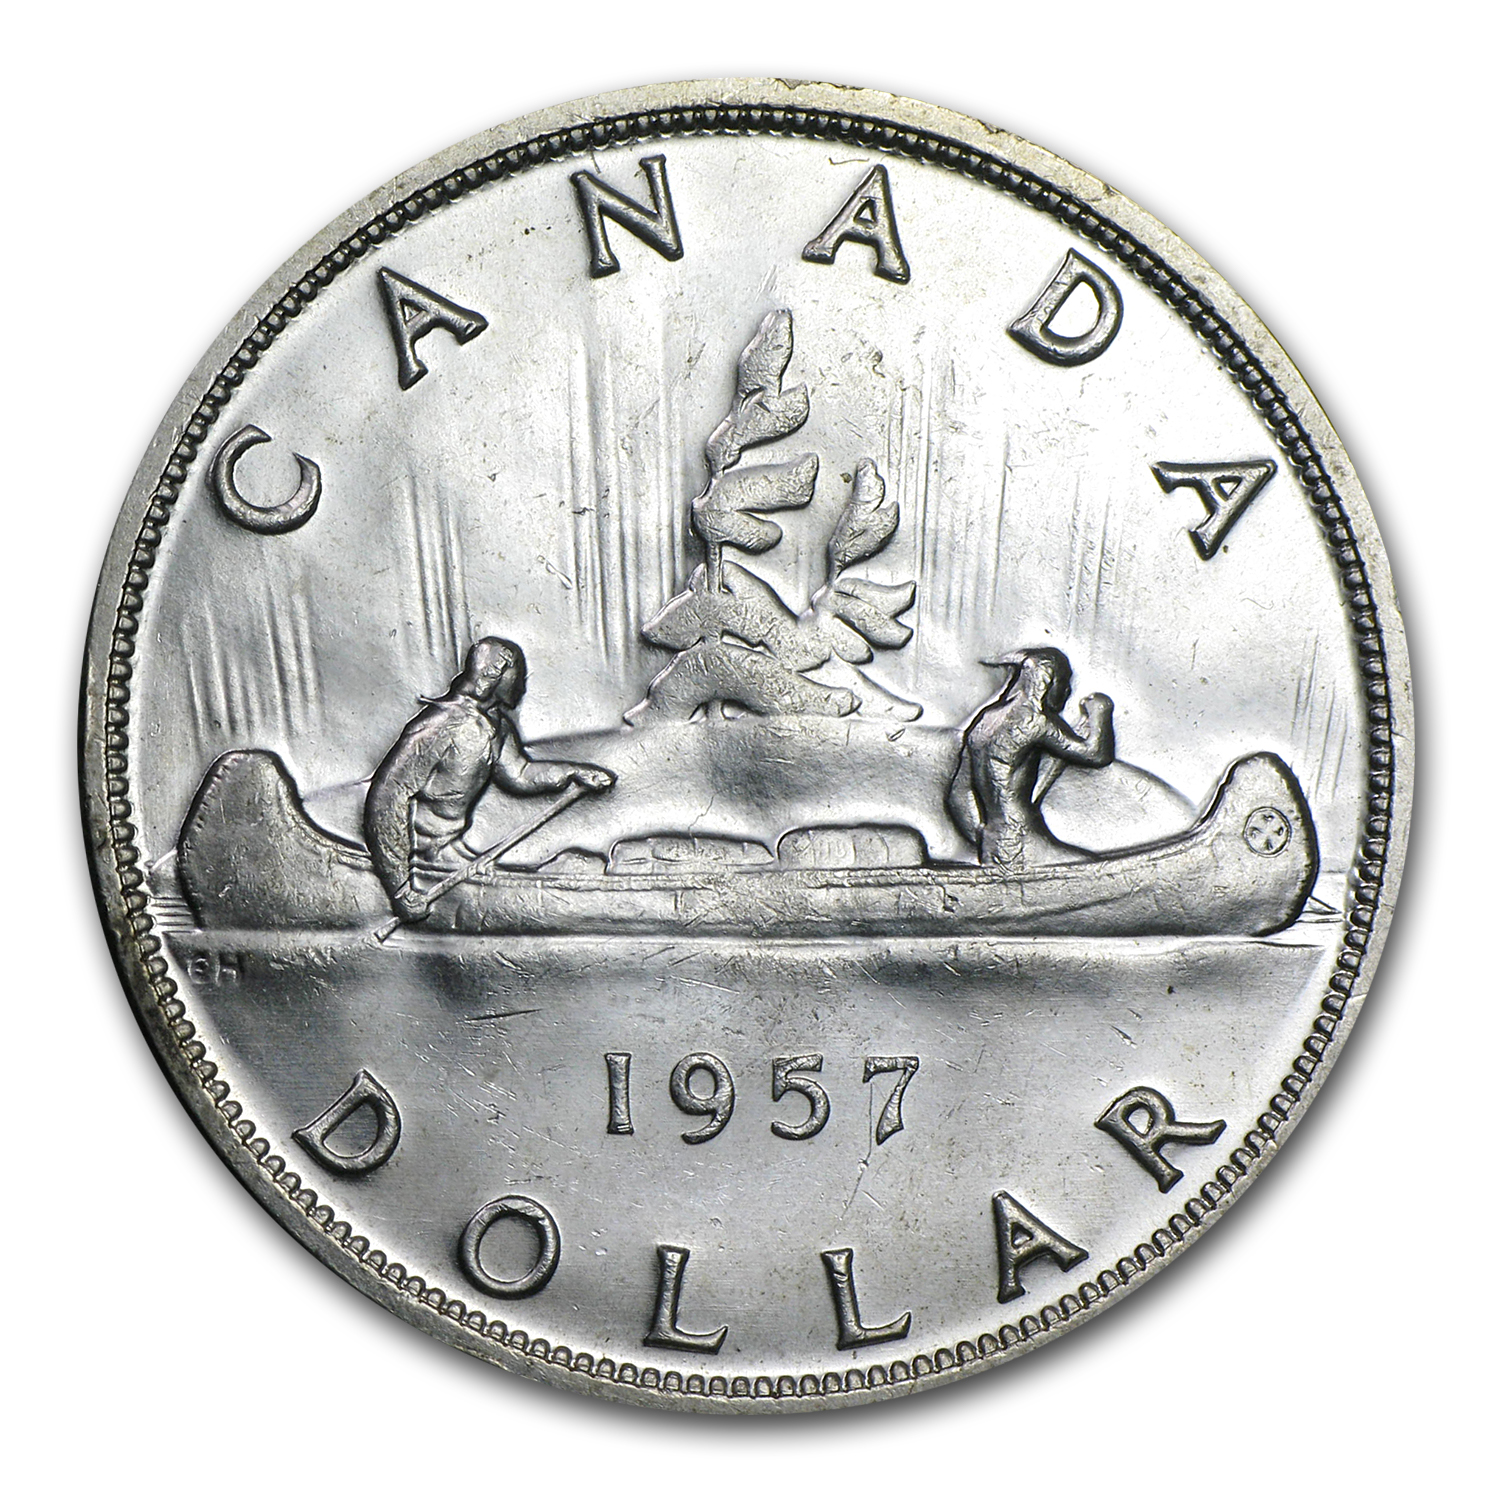 1957 Canadian Silver Dollar (Almost Uncirculated)